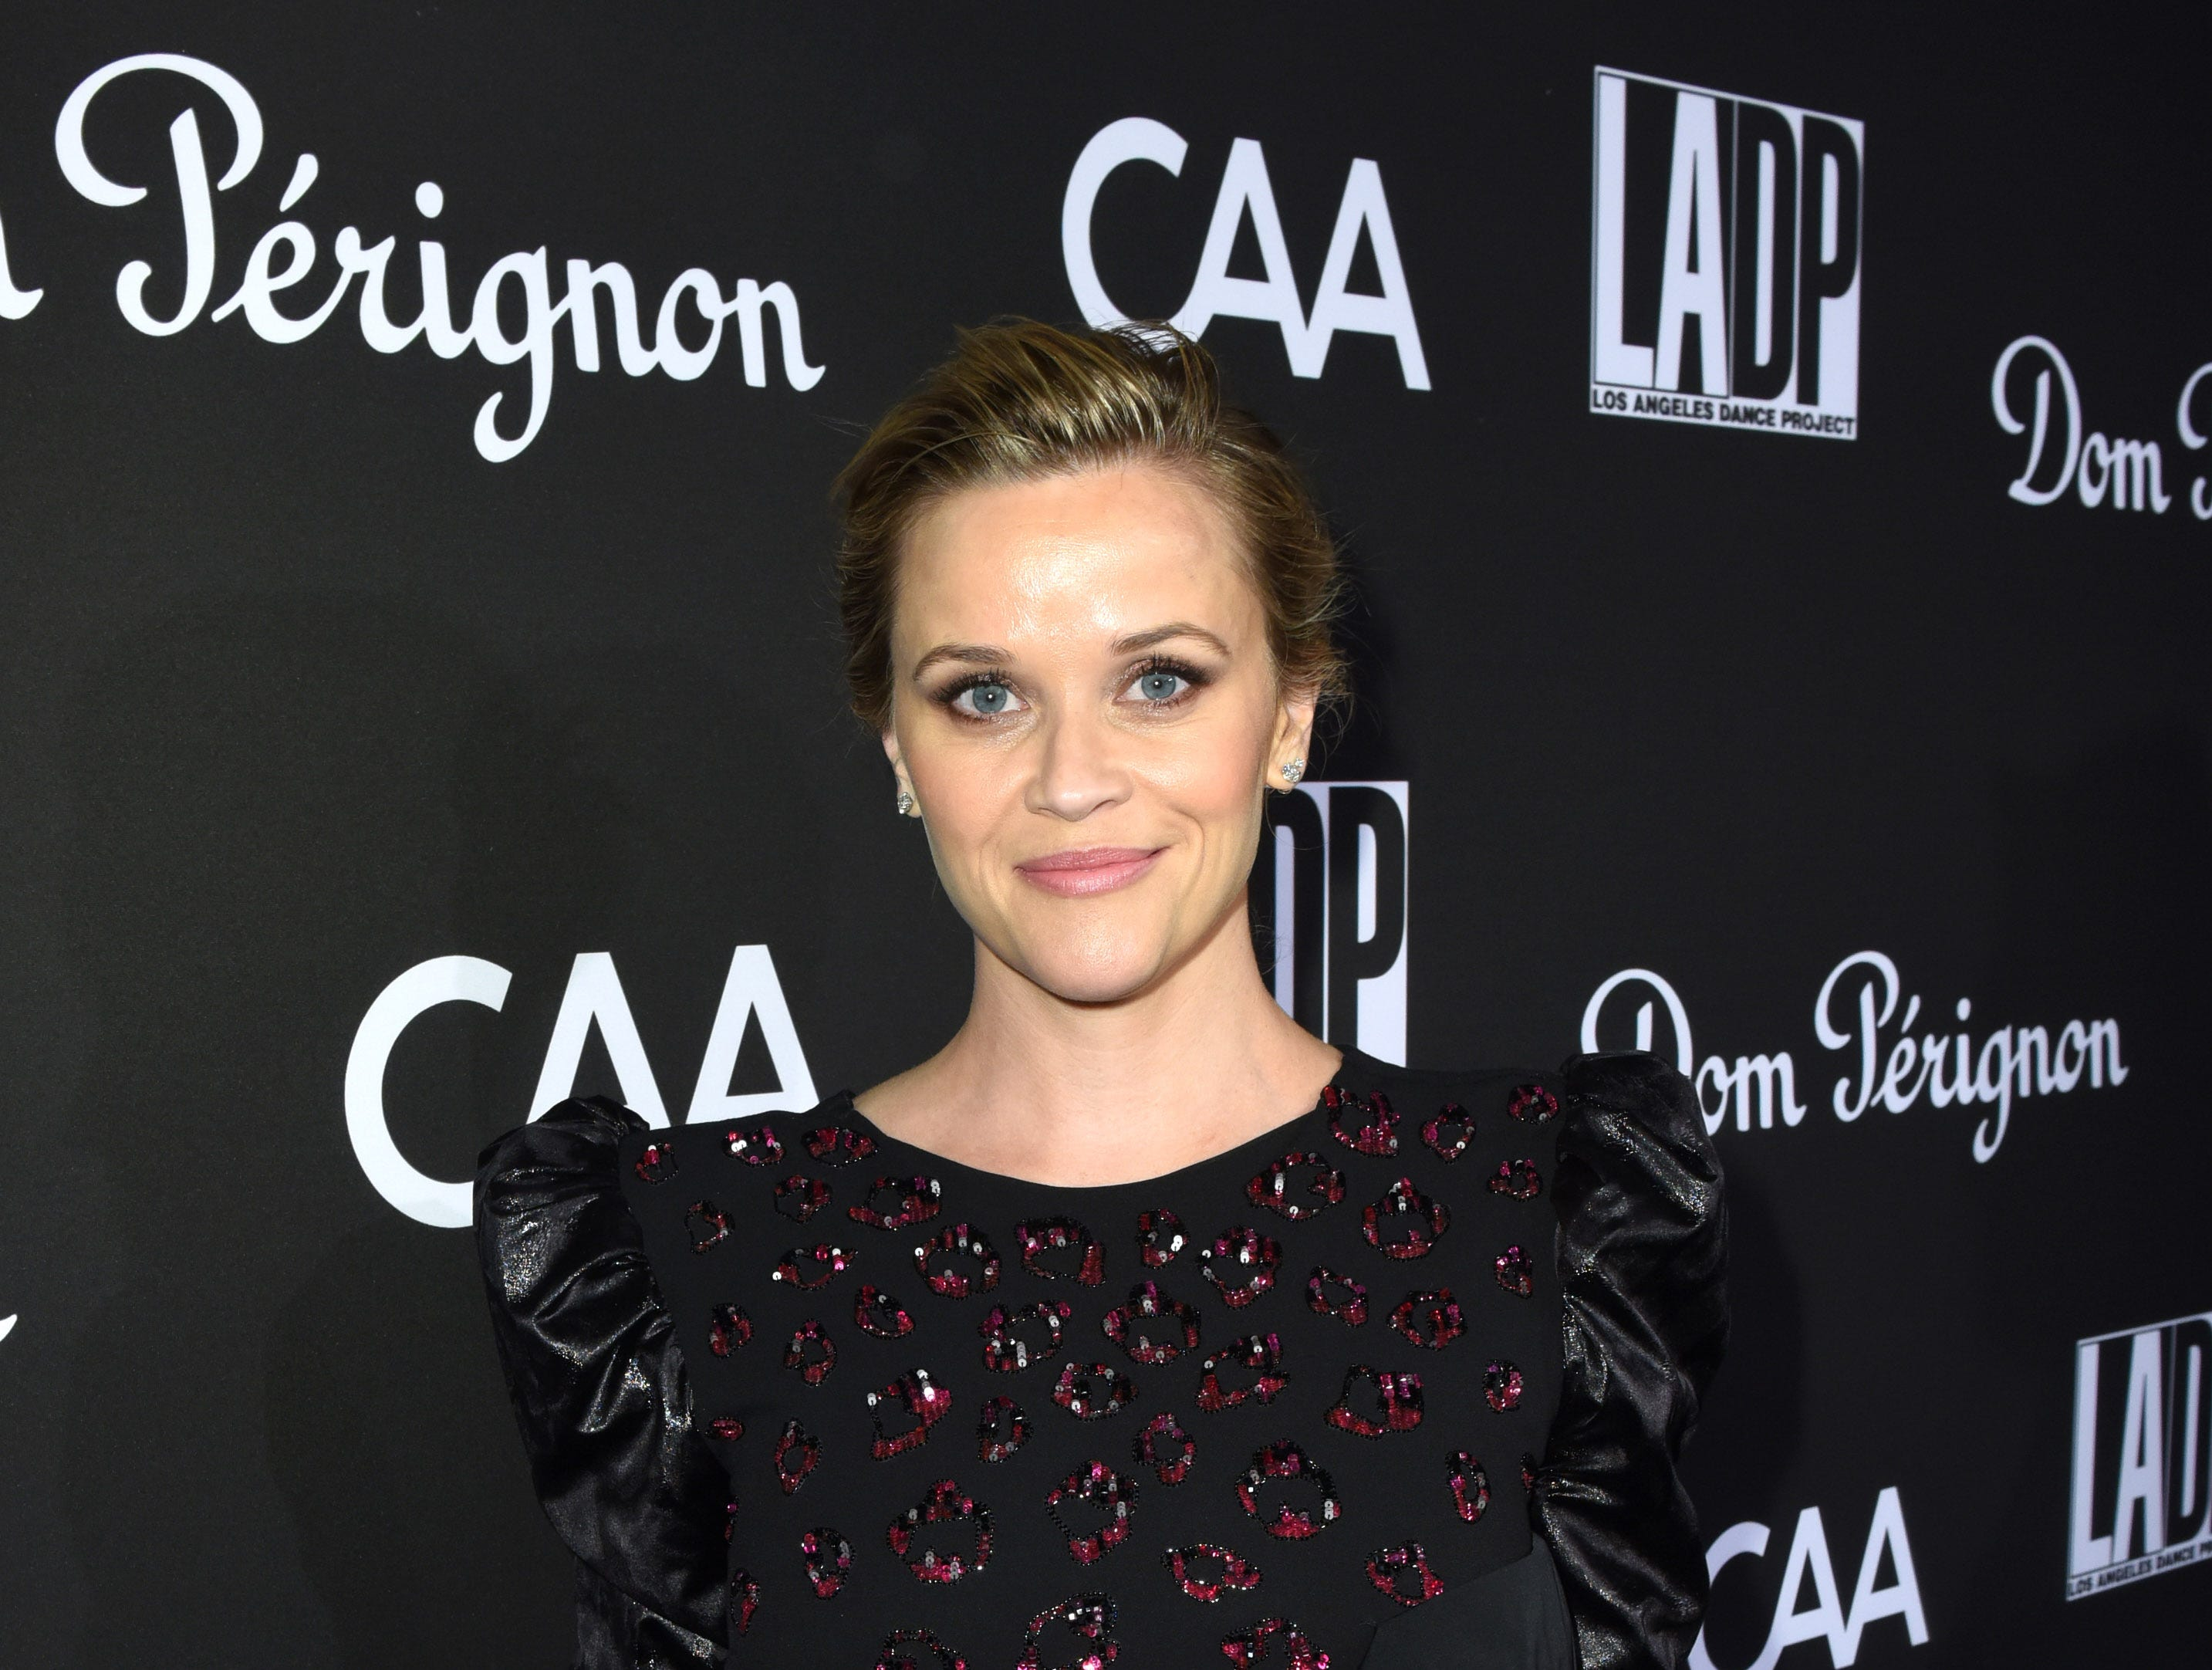 LOS ANGELES, CA - OCTOBER 20:  Reese Witherspoon attends the 2018 LA Dance Project Gala at Hauser & Wirth on October 20, 2018 in Los Angeles, California.  (Photo by Vivien Killilea/Getty Images for L.A. Dance Project) ORG XMIT: 775238462 ORIG FILE ID: 1052667632